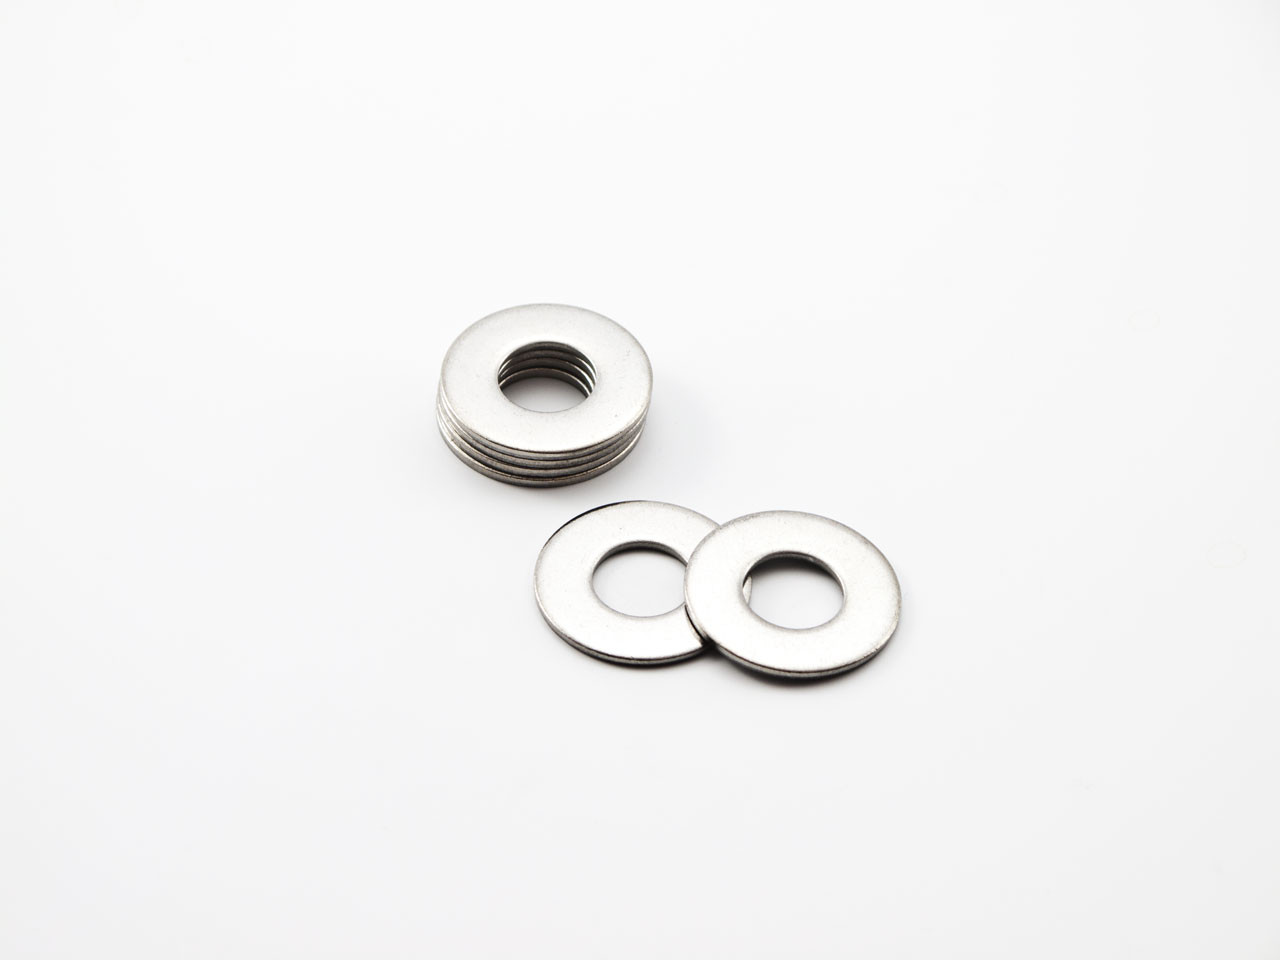 5/16*3/4 inch stainless steel washers